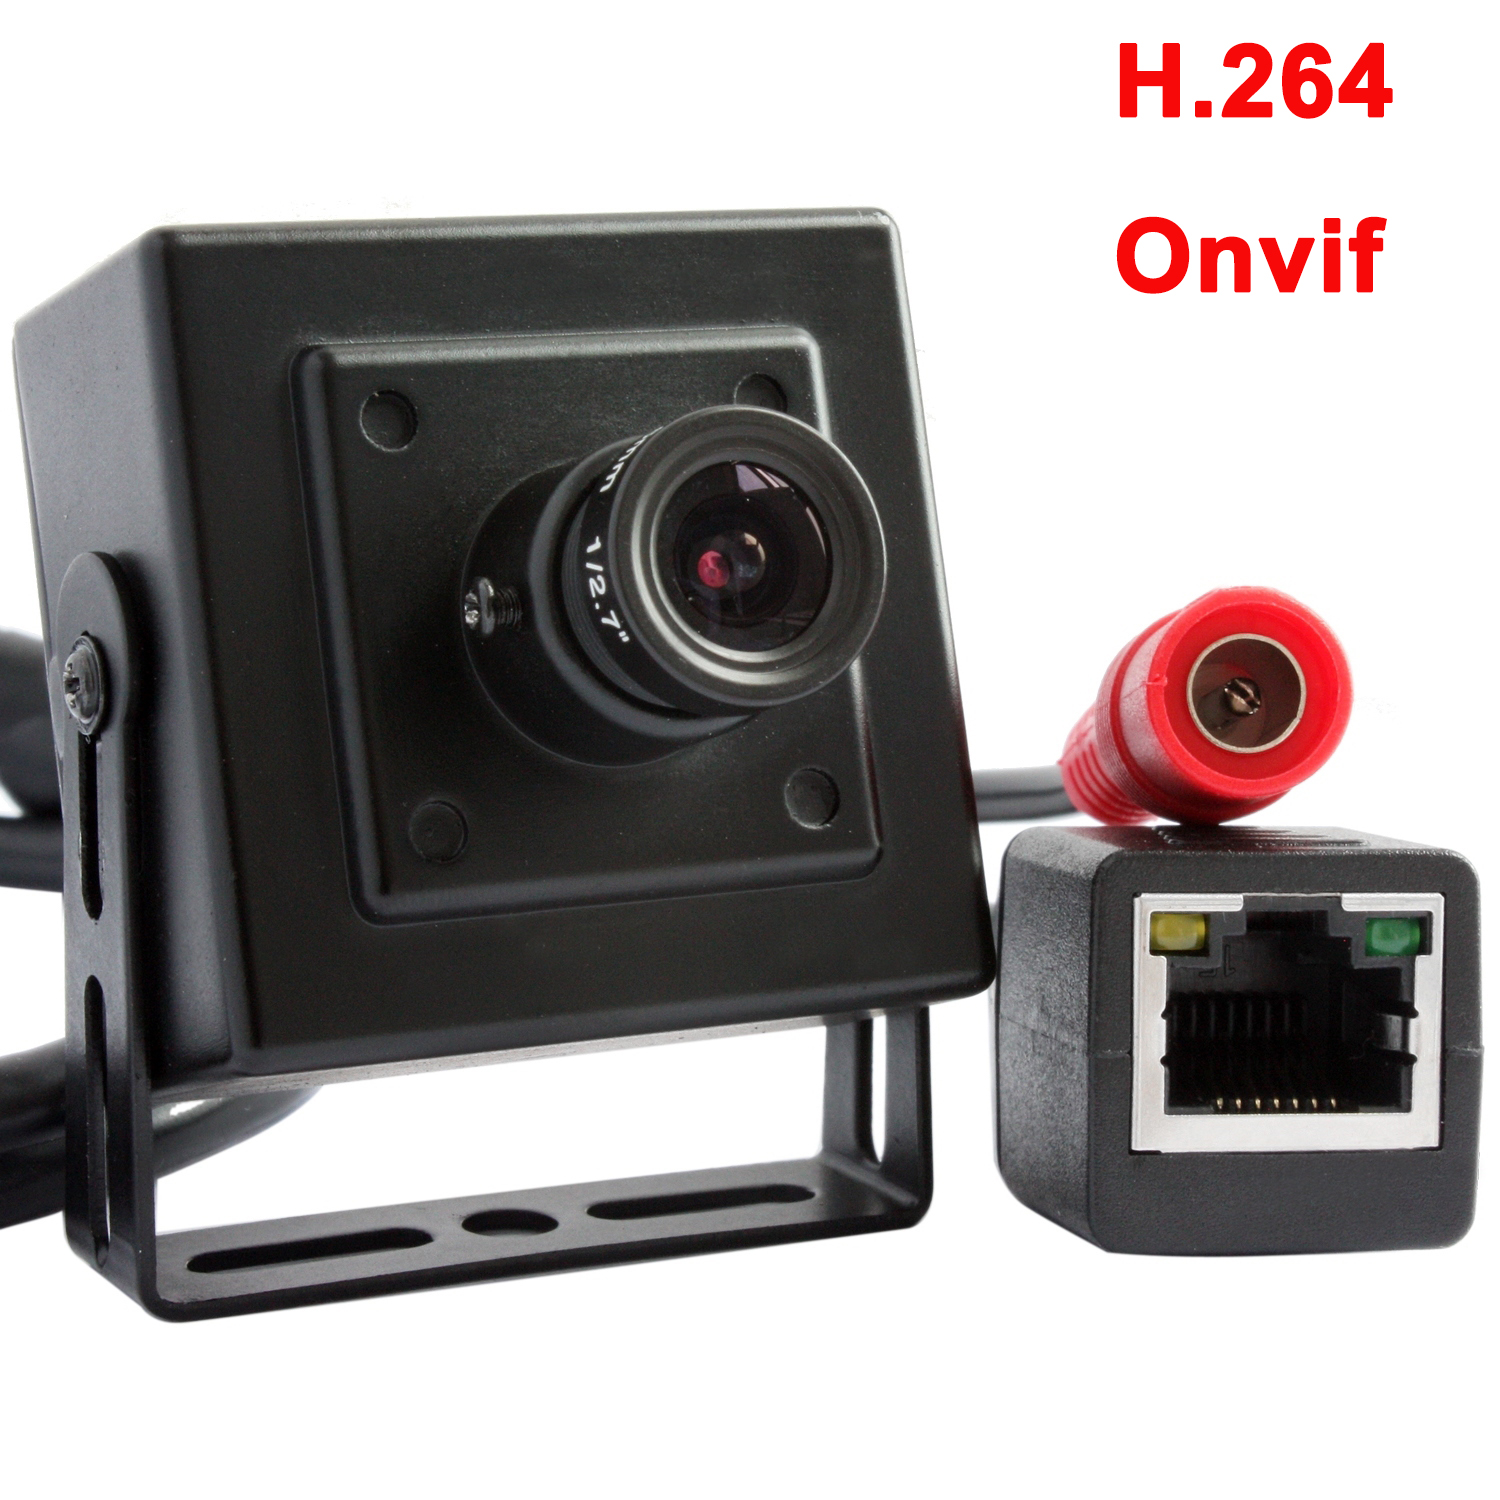 ELP-IP1881 1280x720p 1.0 Megapixel Mini IP Camera,Mini Hidden Network Camera,Onvif